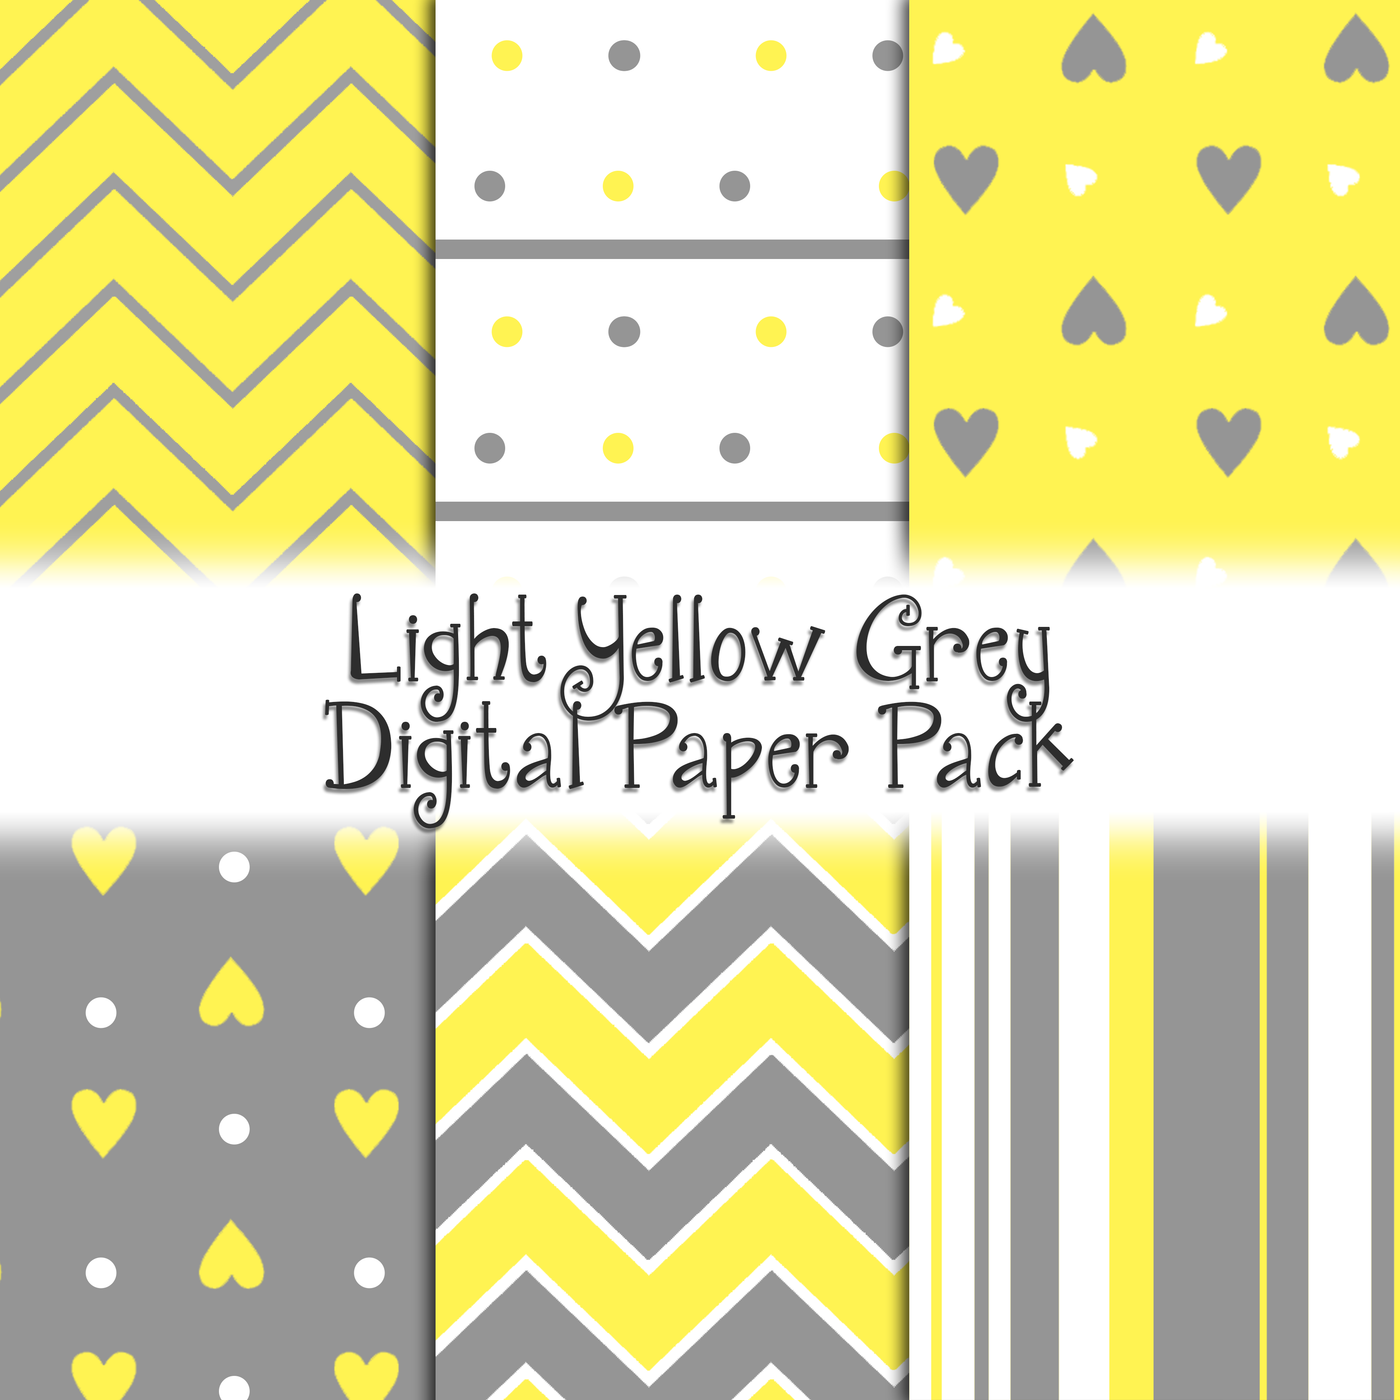 Light Yellow Grey Digital Paper Pack